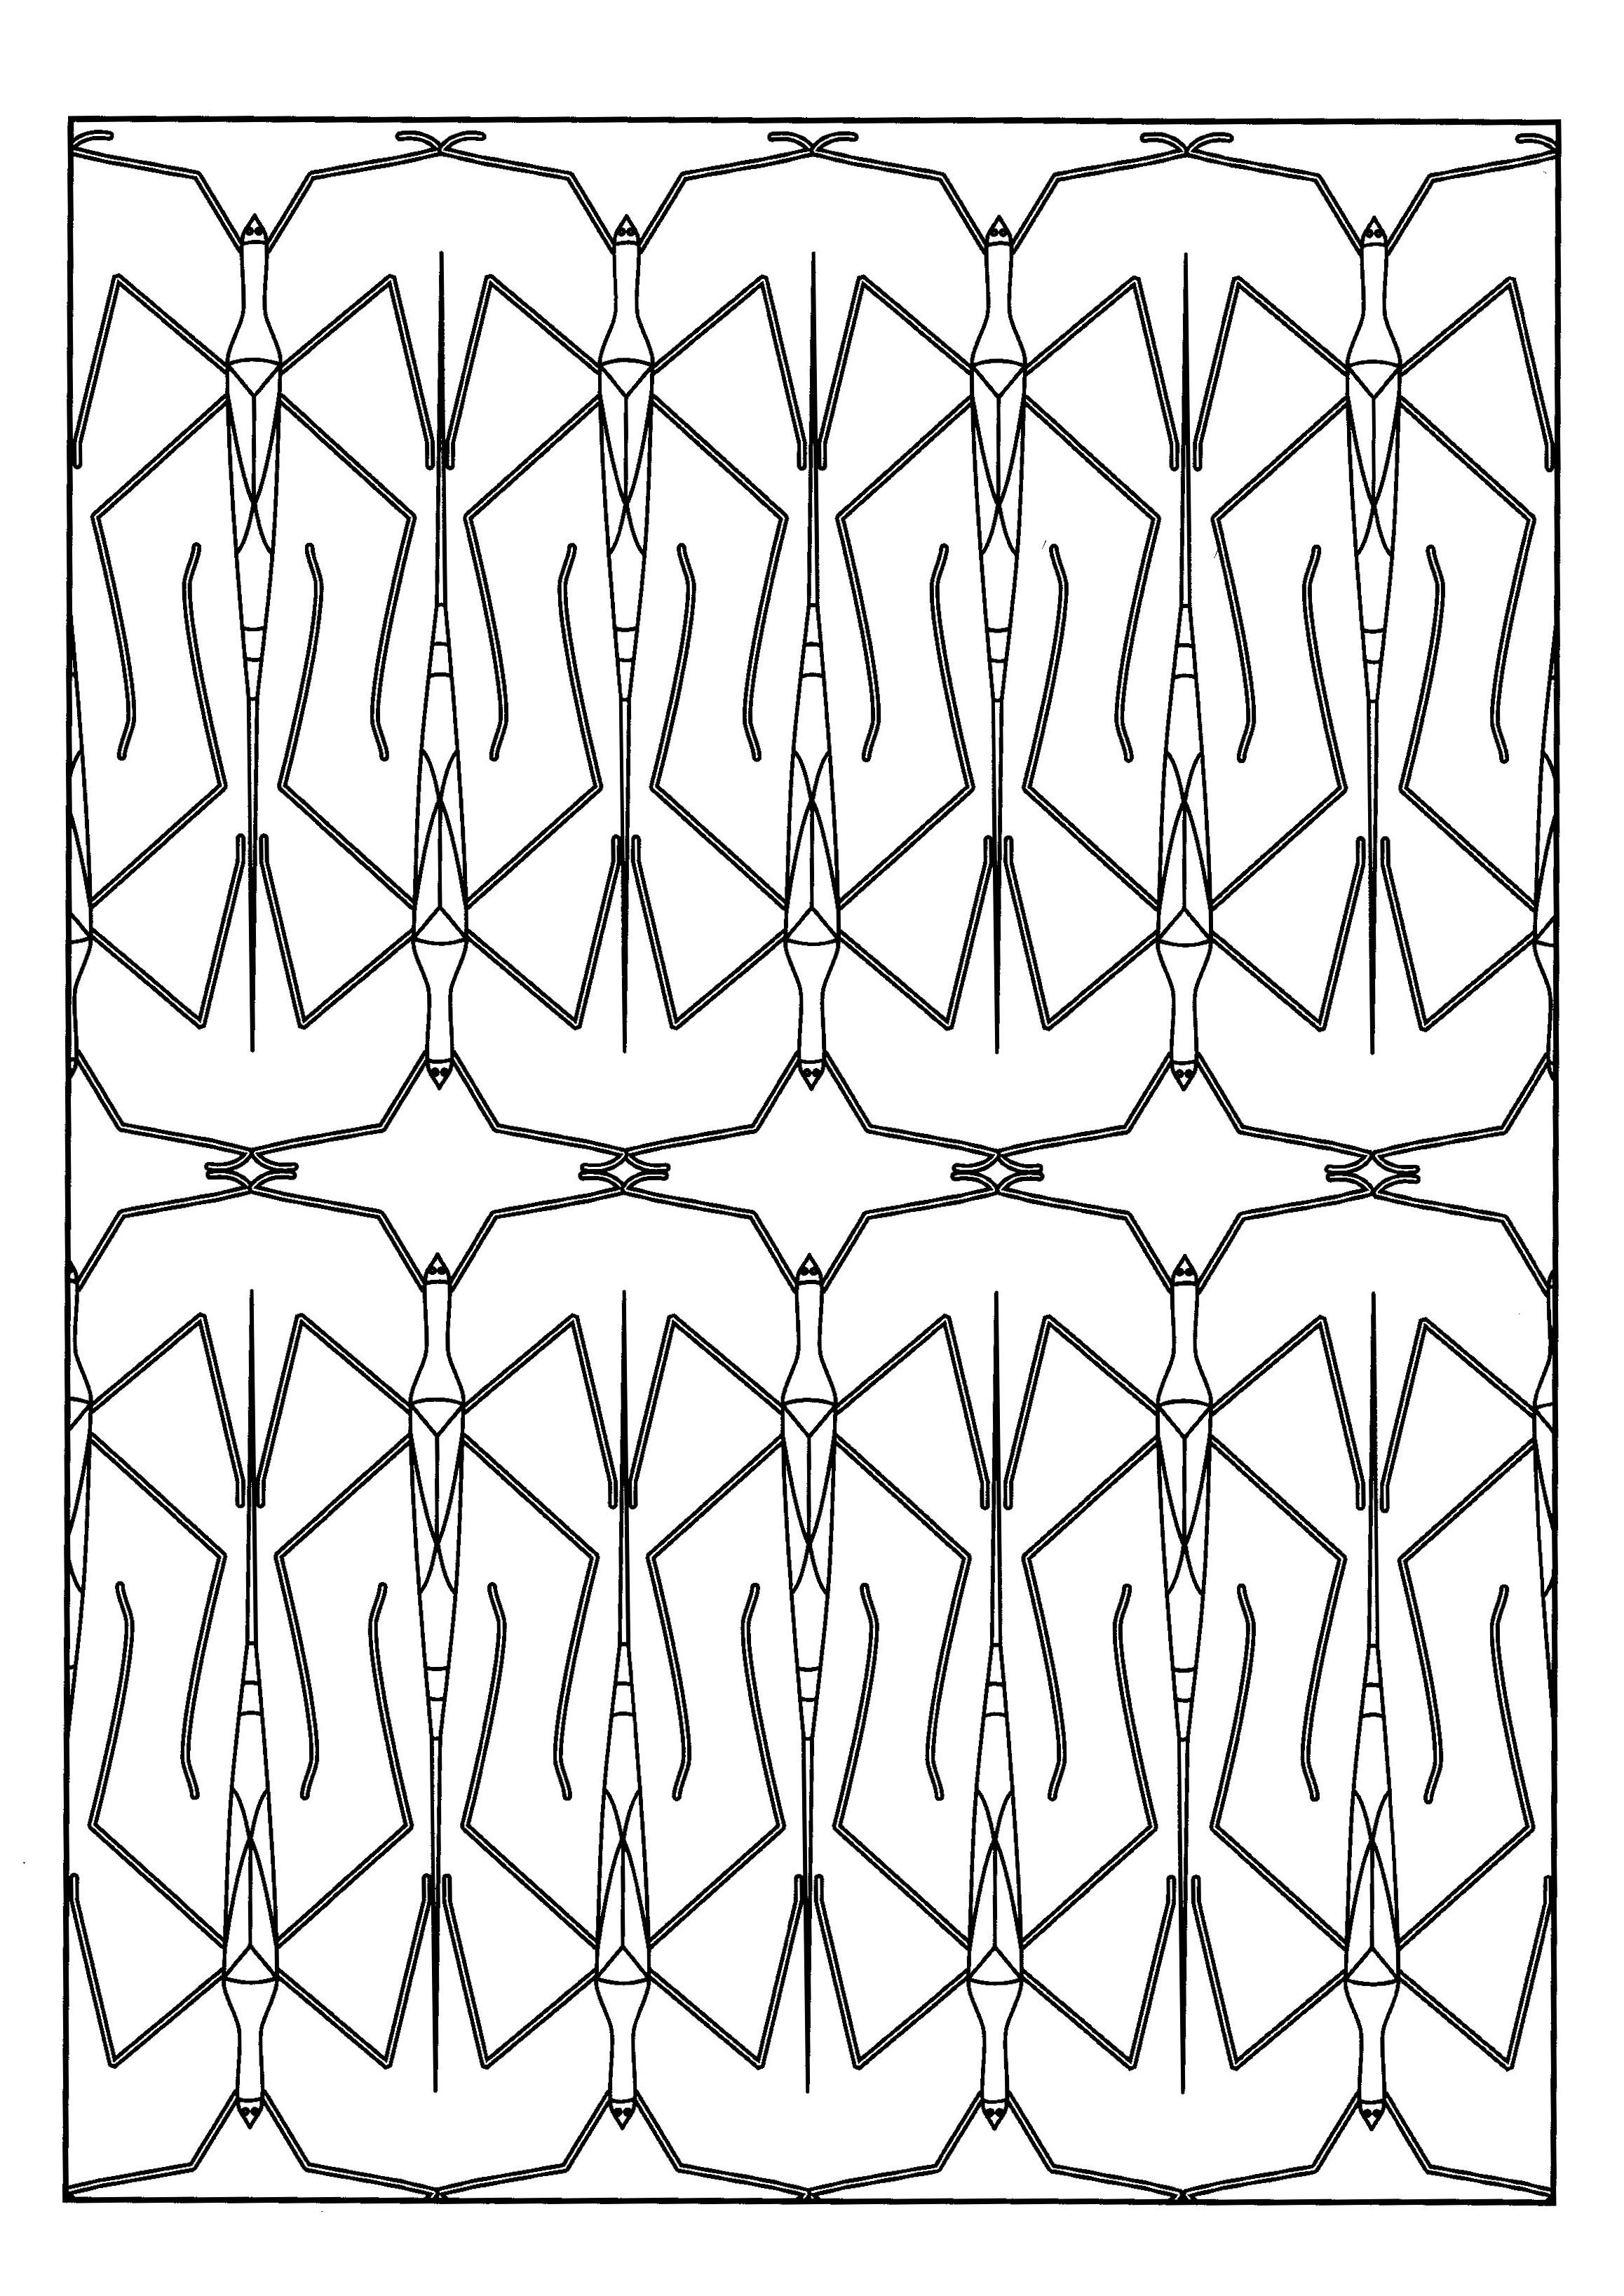 Here Are Complex Coloring Pages For Adults Of Insects Different Styles Are Available Different L Insect Coloring Pages Animal Coloring Pages Coloring Pages